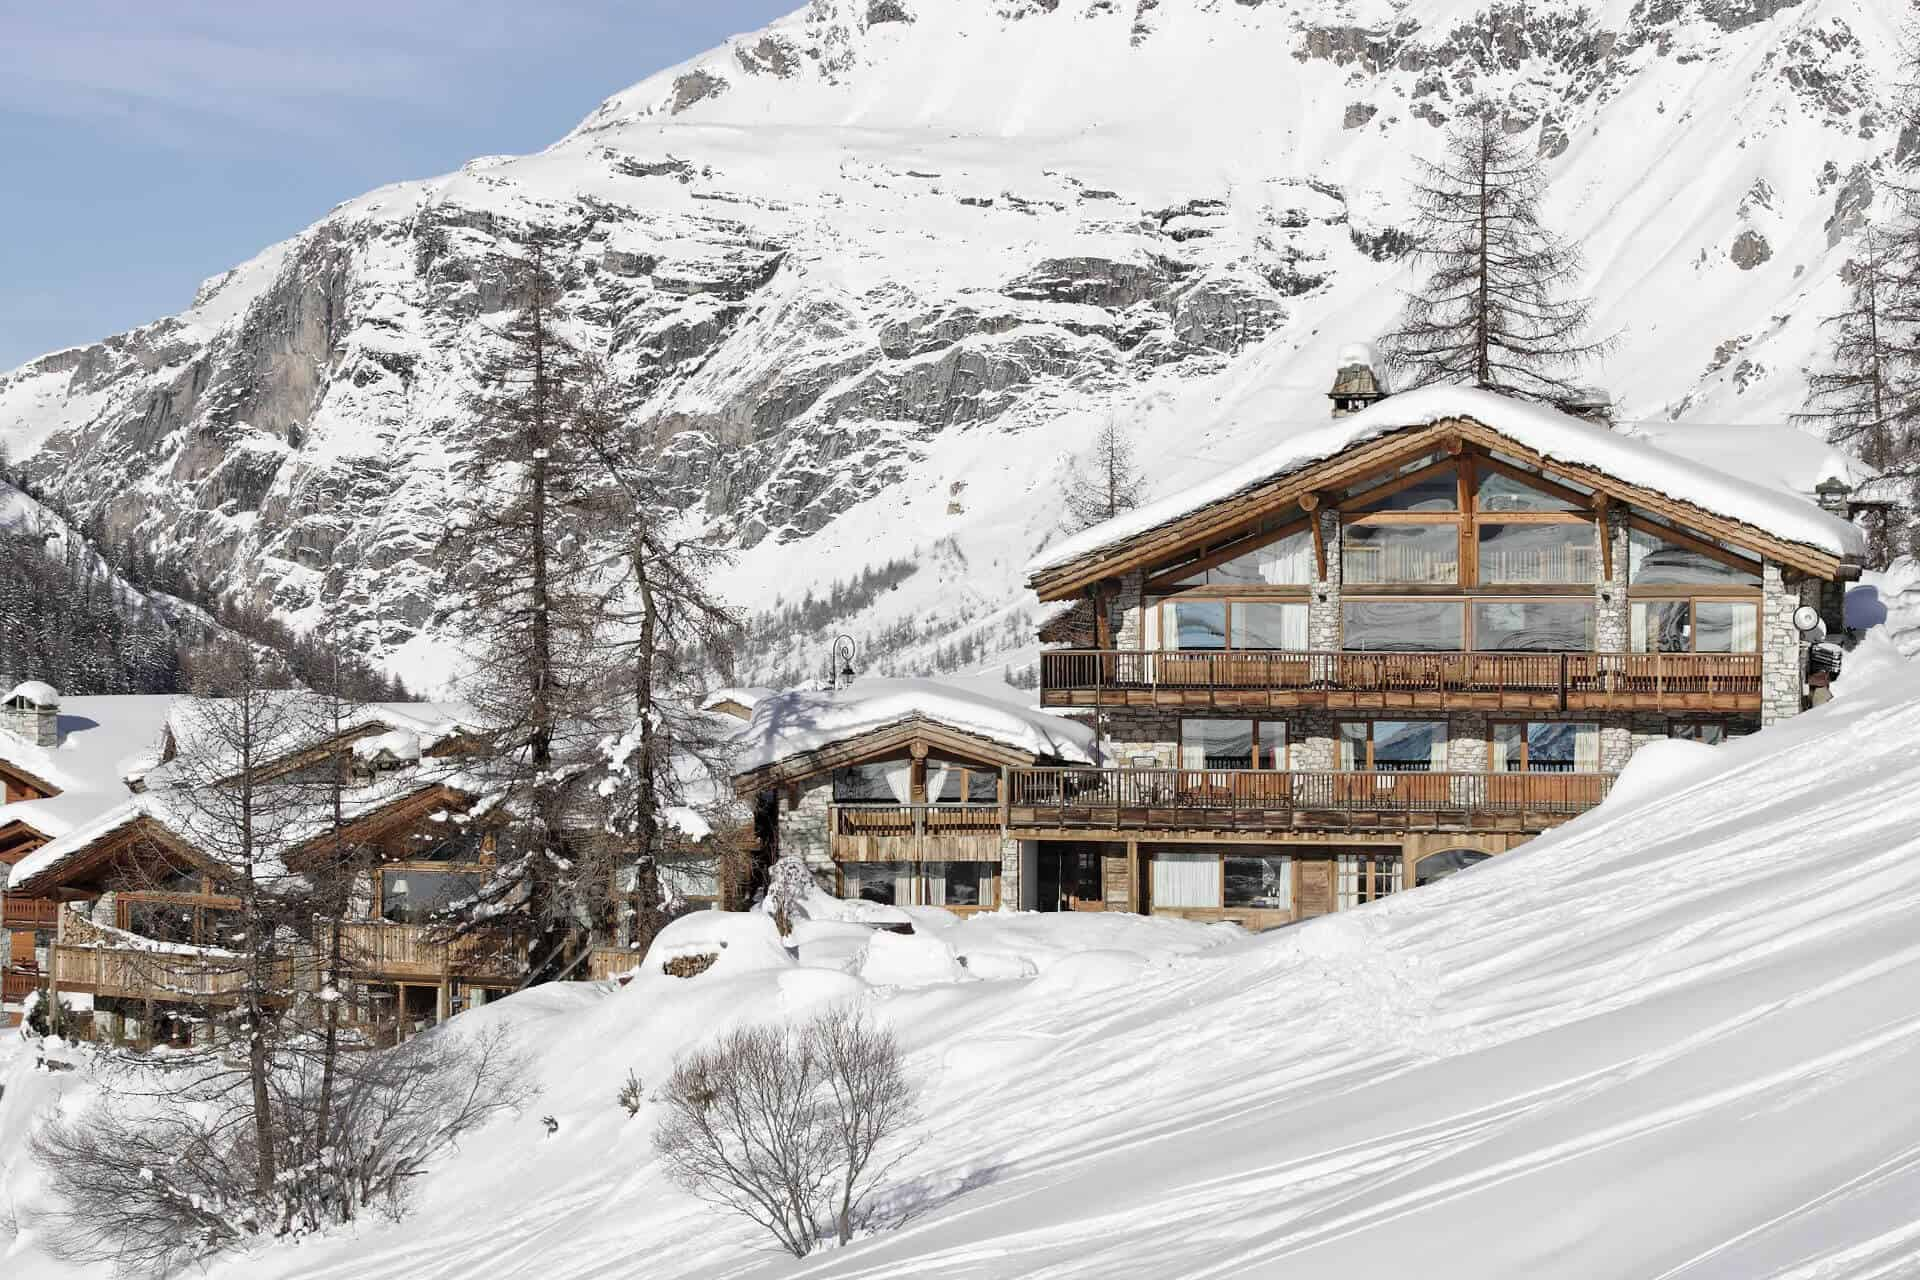 YOUR LUXURY SKI CHALET AWAITS